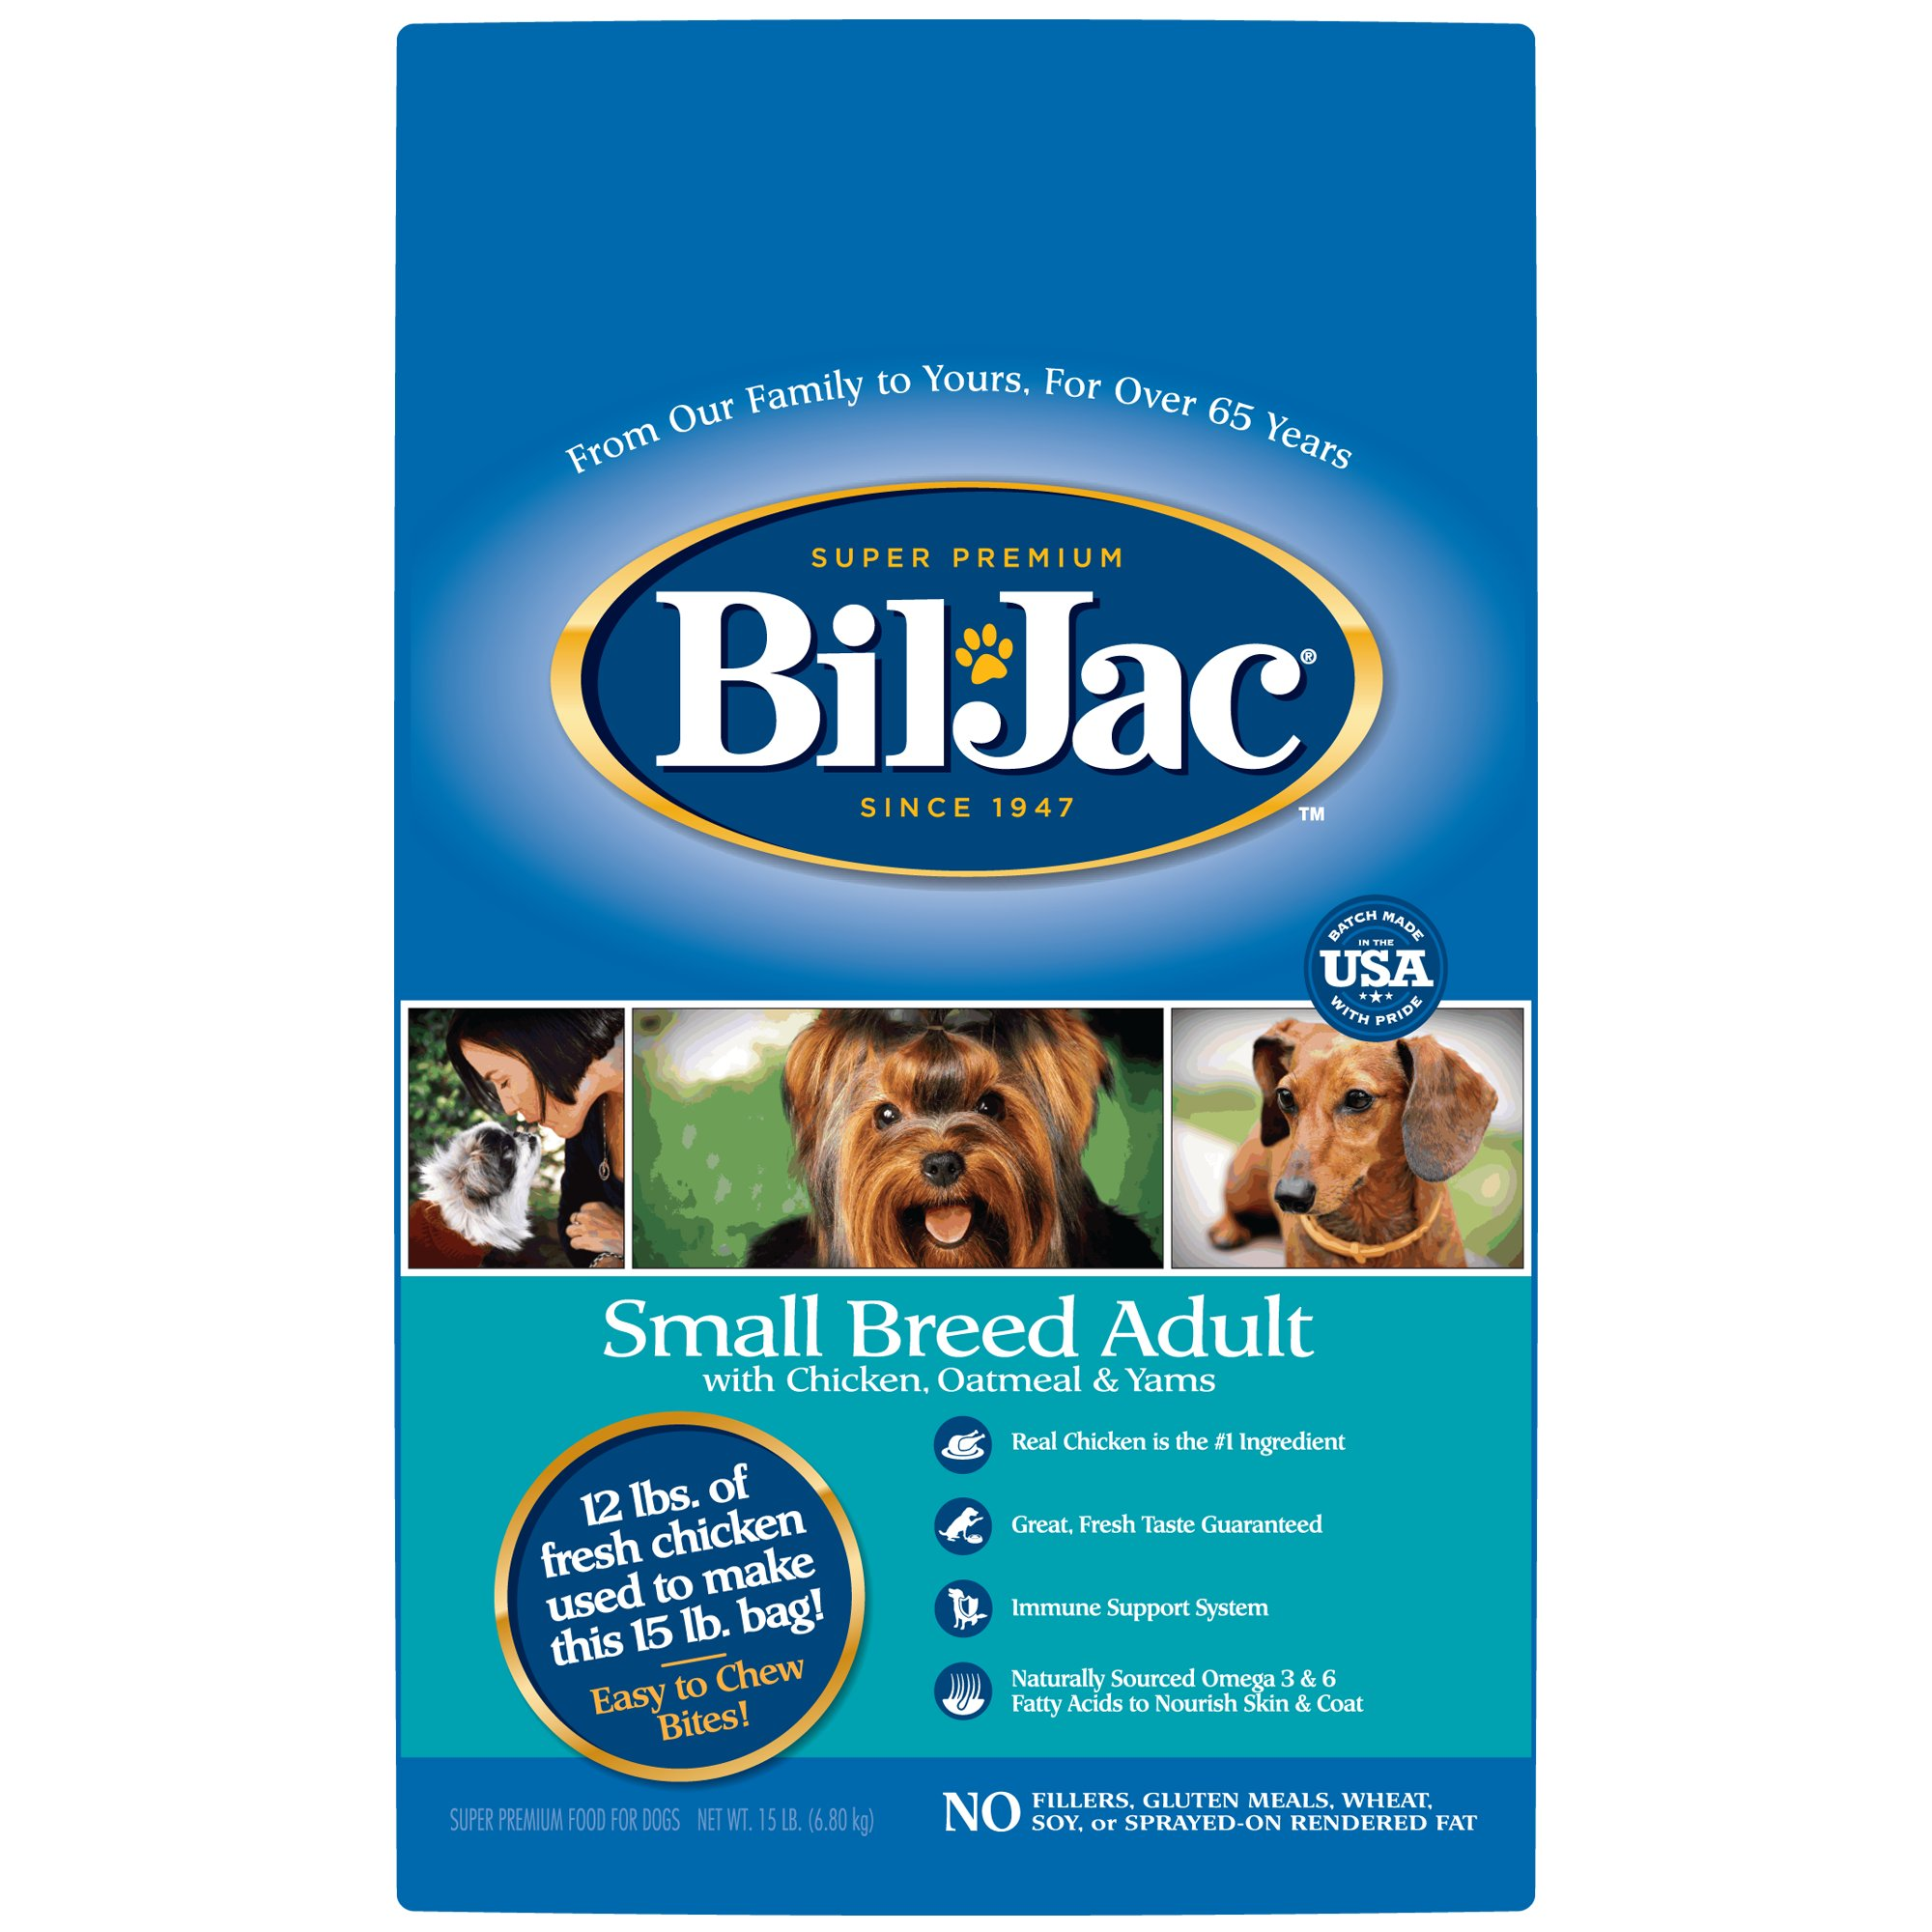 Bil-Jac Small Breed Adult Chicken Oatmeal & Yams Dry Dog Food